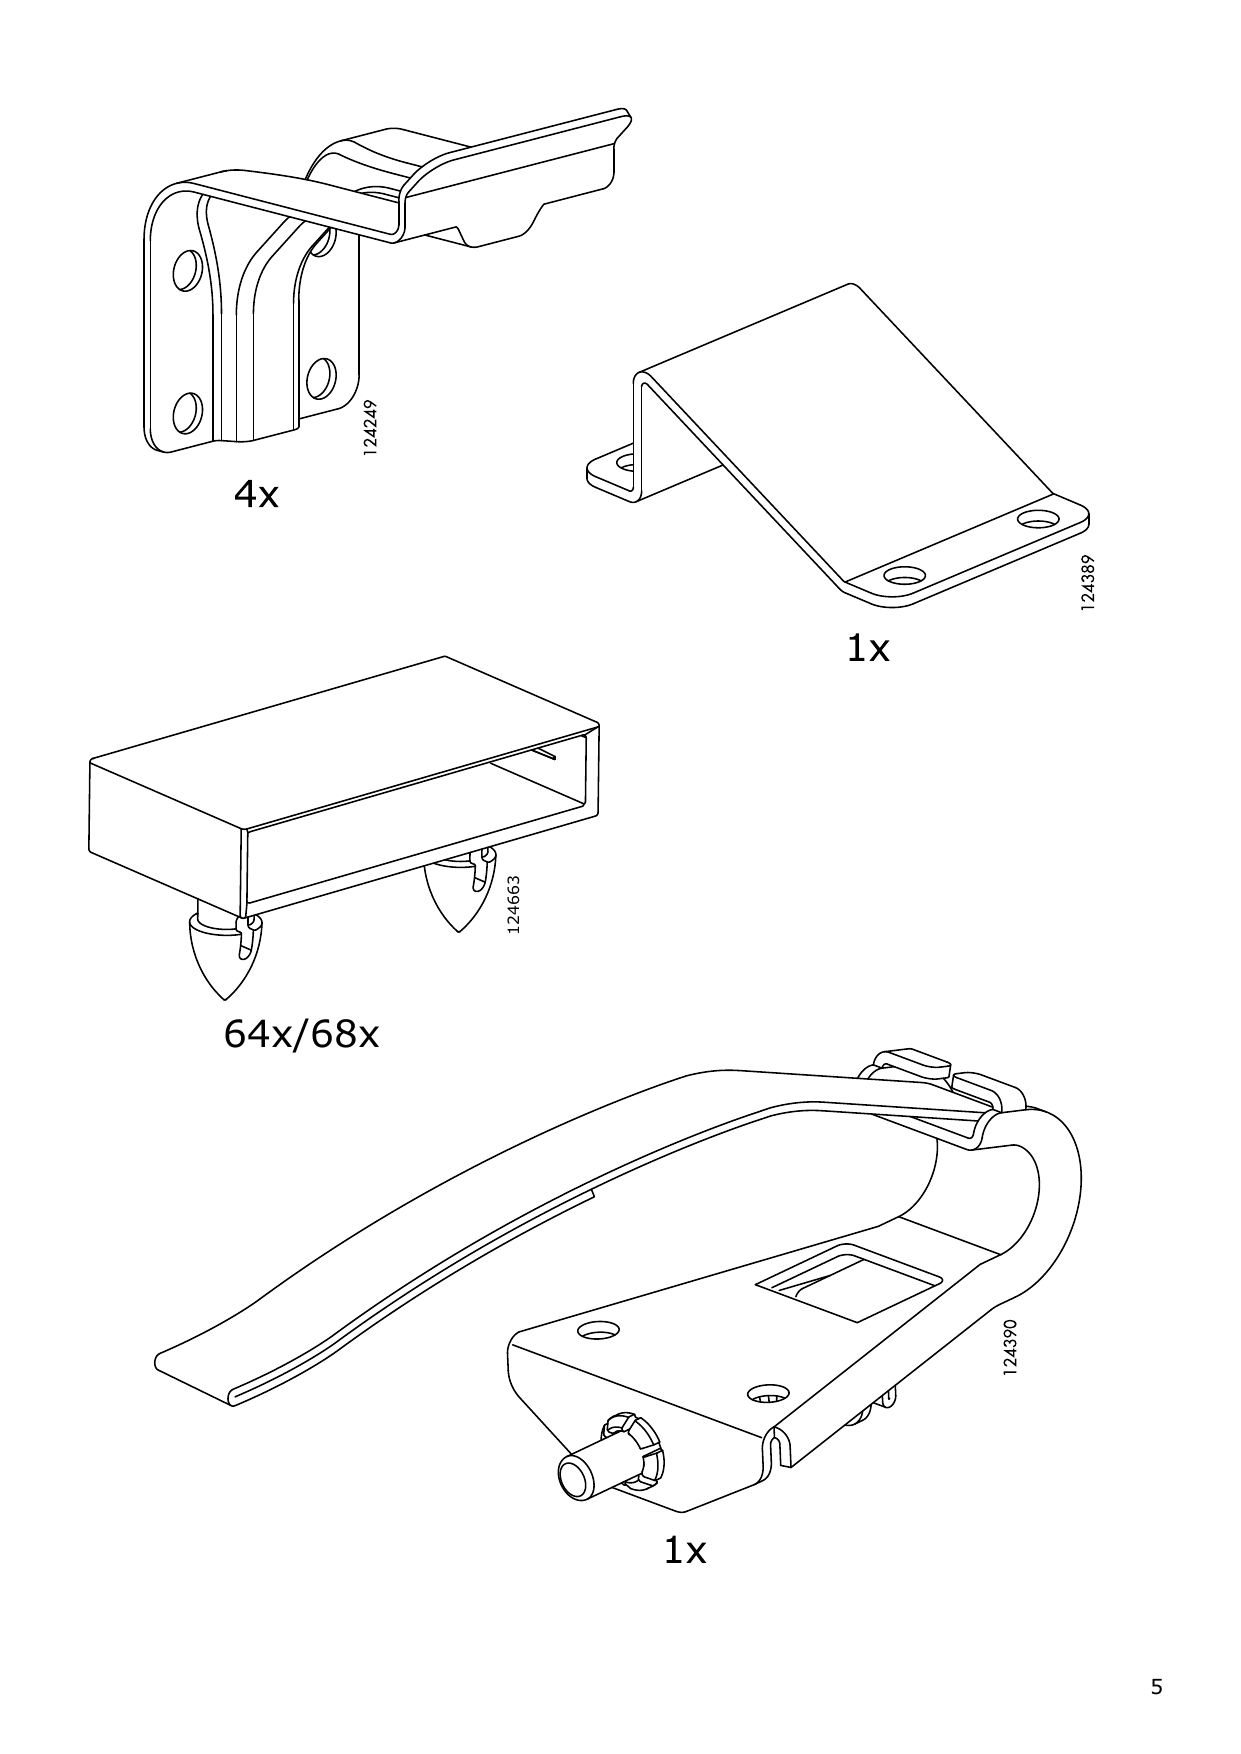 IKEA MALM Storage bed Assembly Instruction - 5